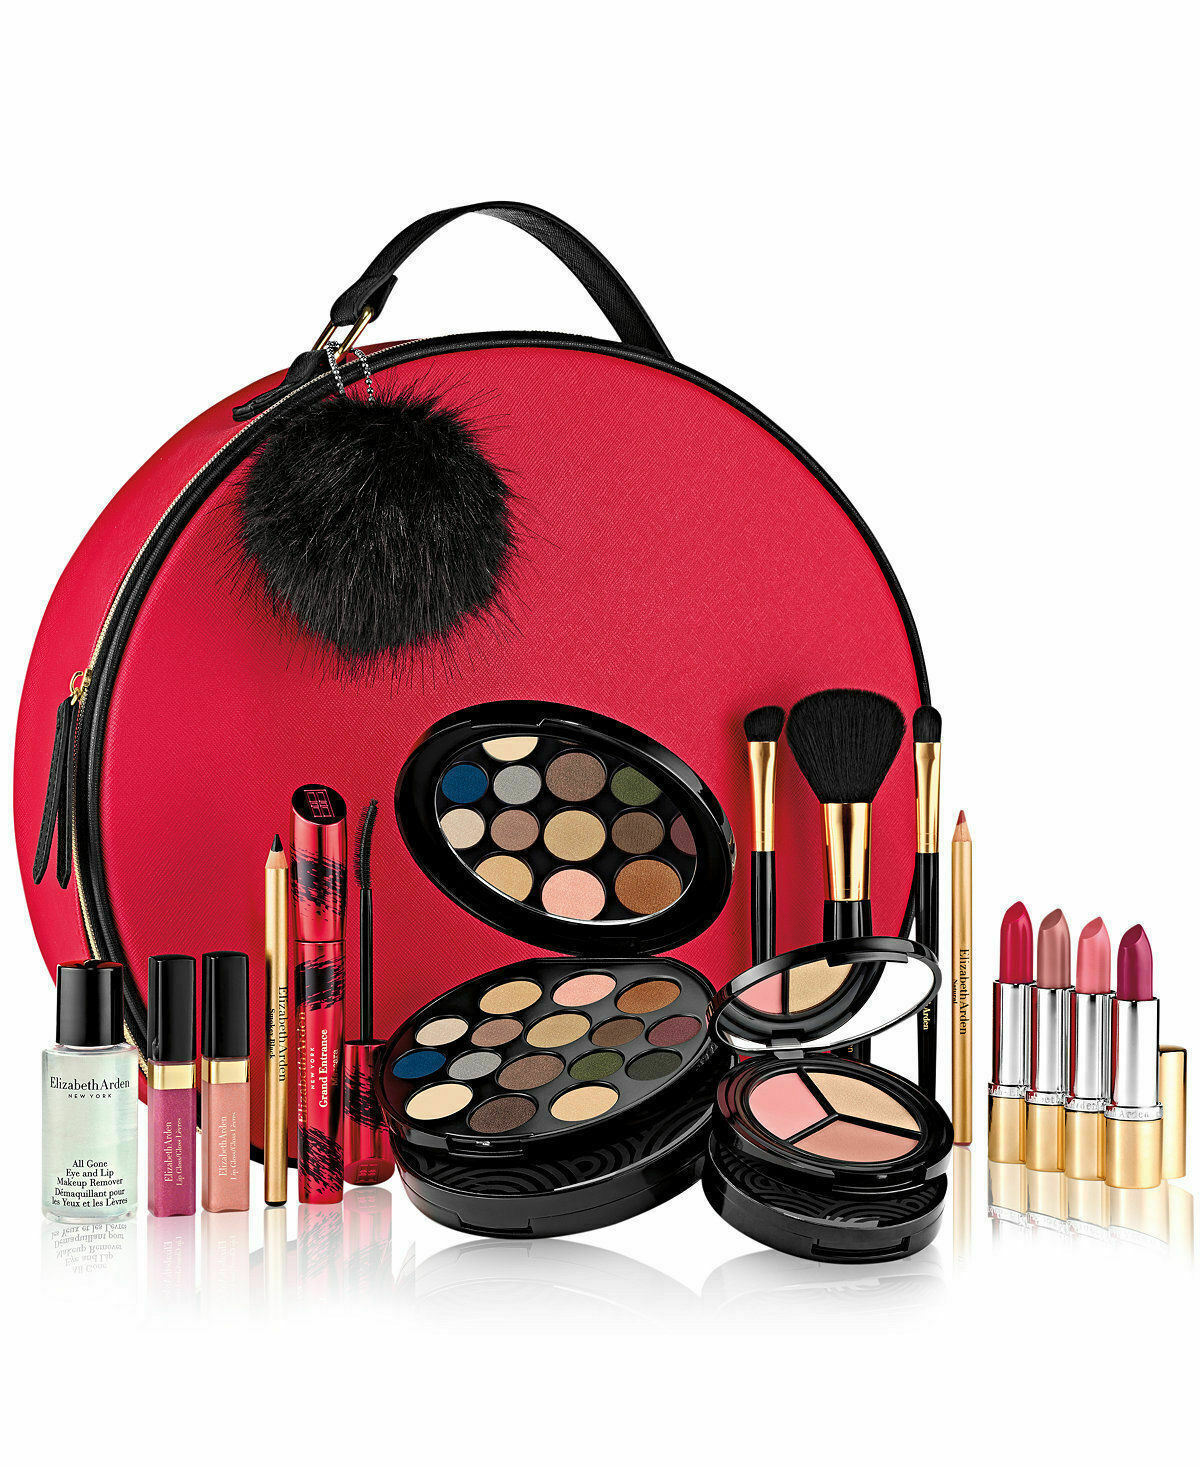 Primary image for ELIZABETH ARDEN HOLIDAY BLOCKBUSTER GIFT SET ($572 VALUE) NEW IN BOX